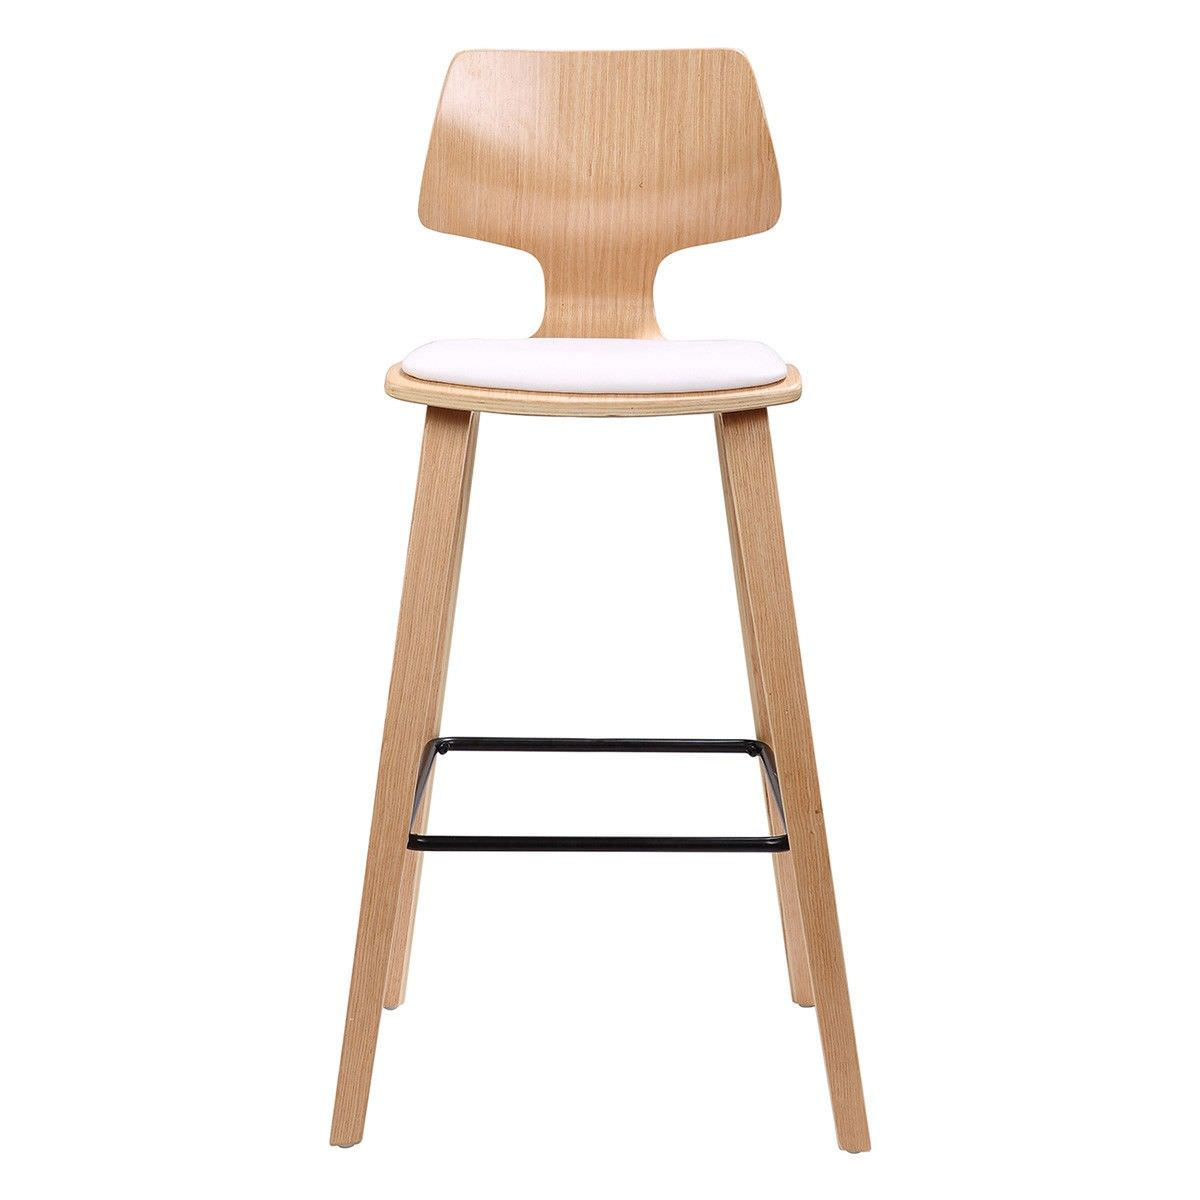 Hourglass Wooden Counter Stool with PU Seat